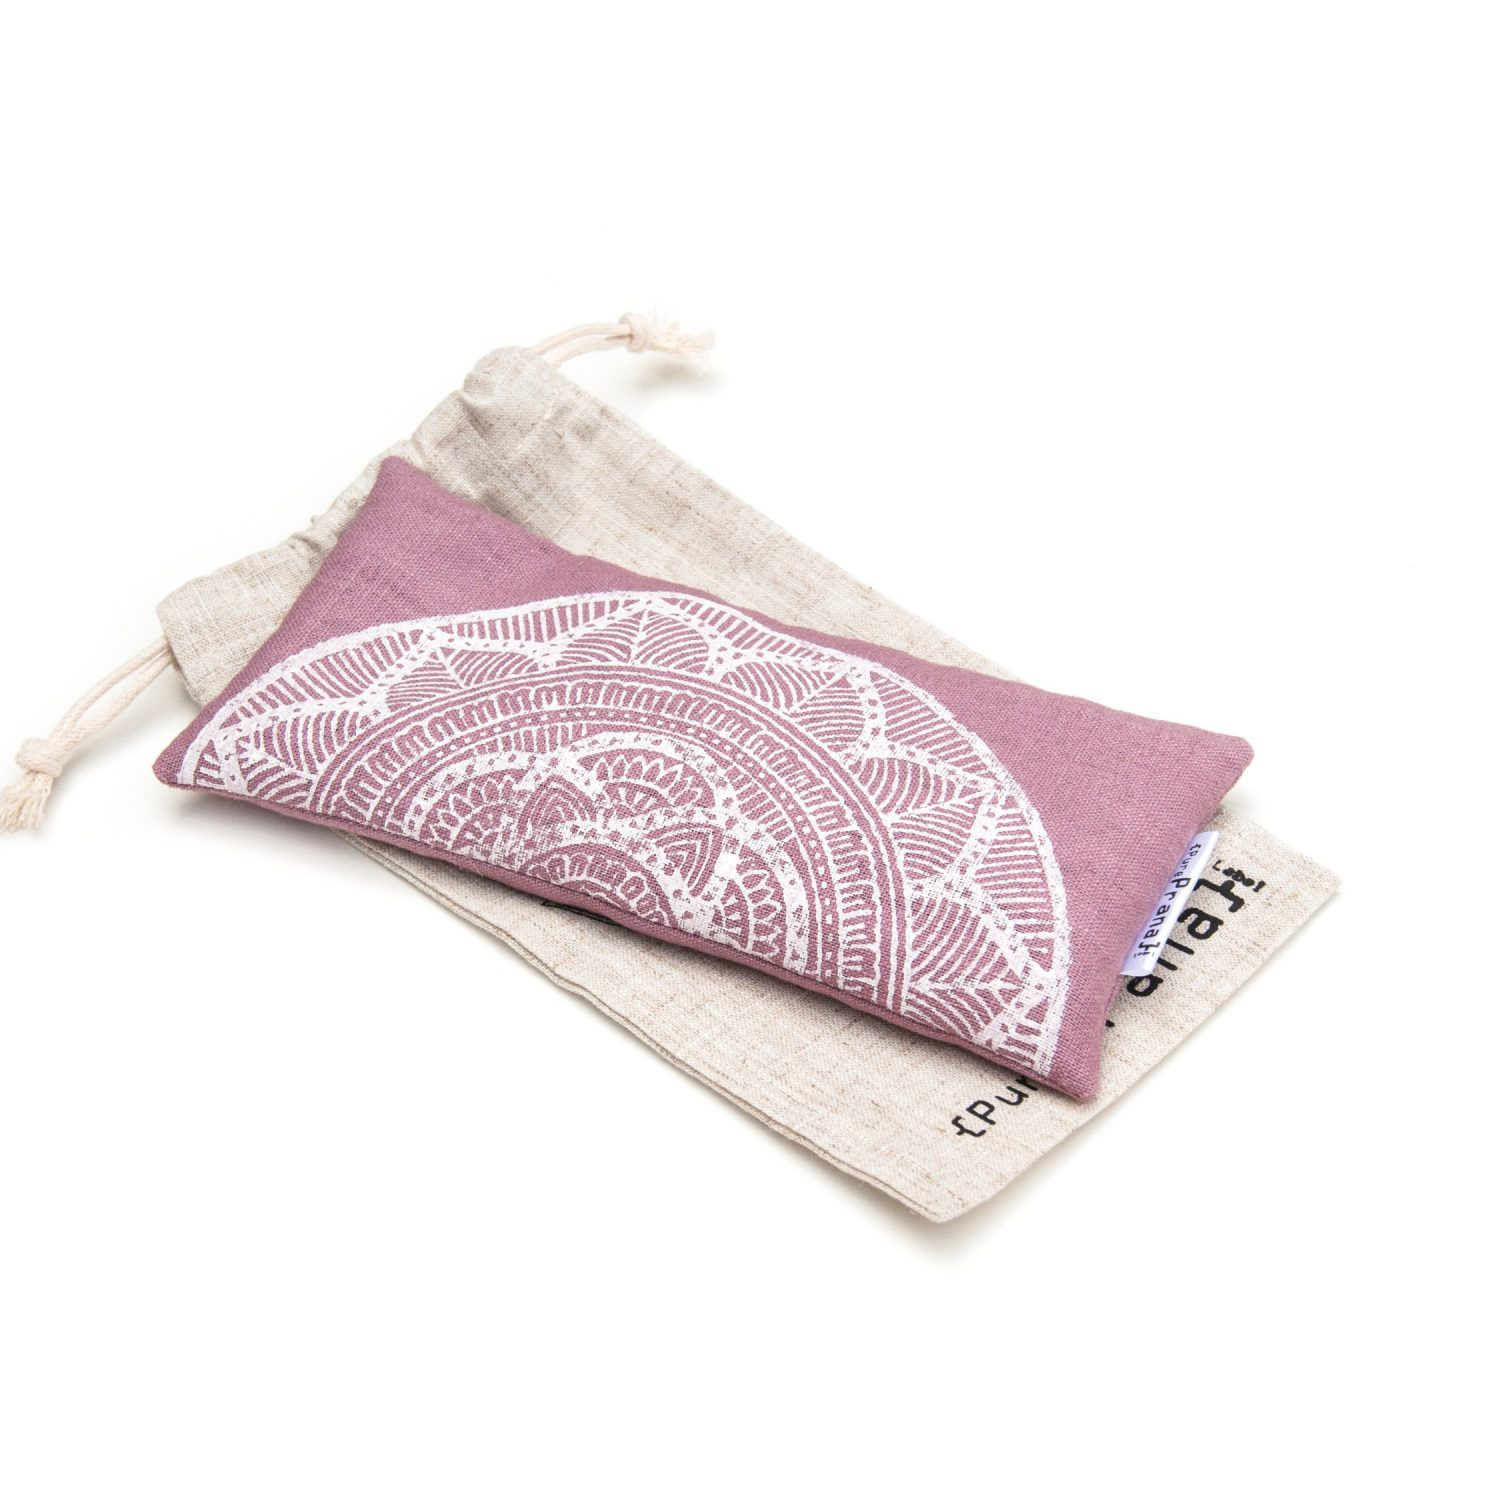 Mauve pink lavender eye pillow with mandala print by Pure Prana Label